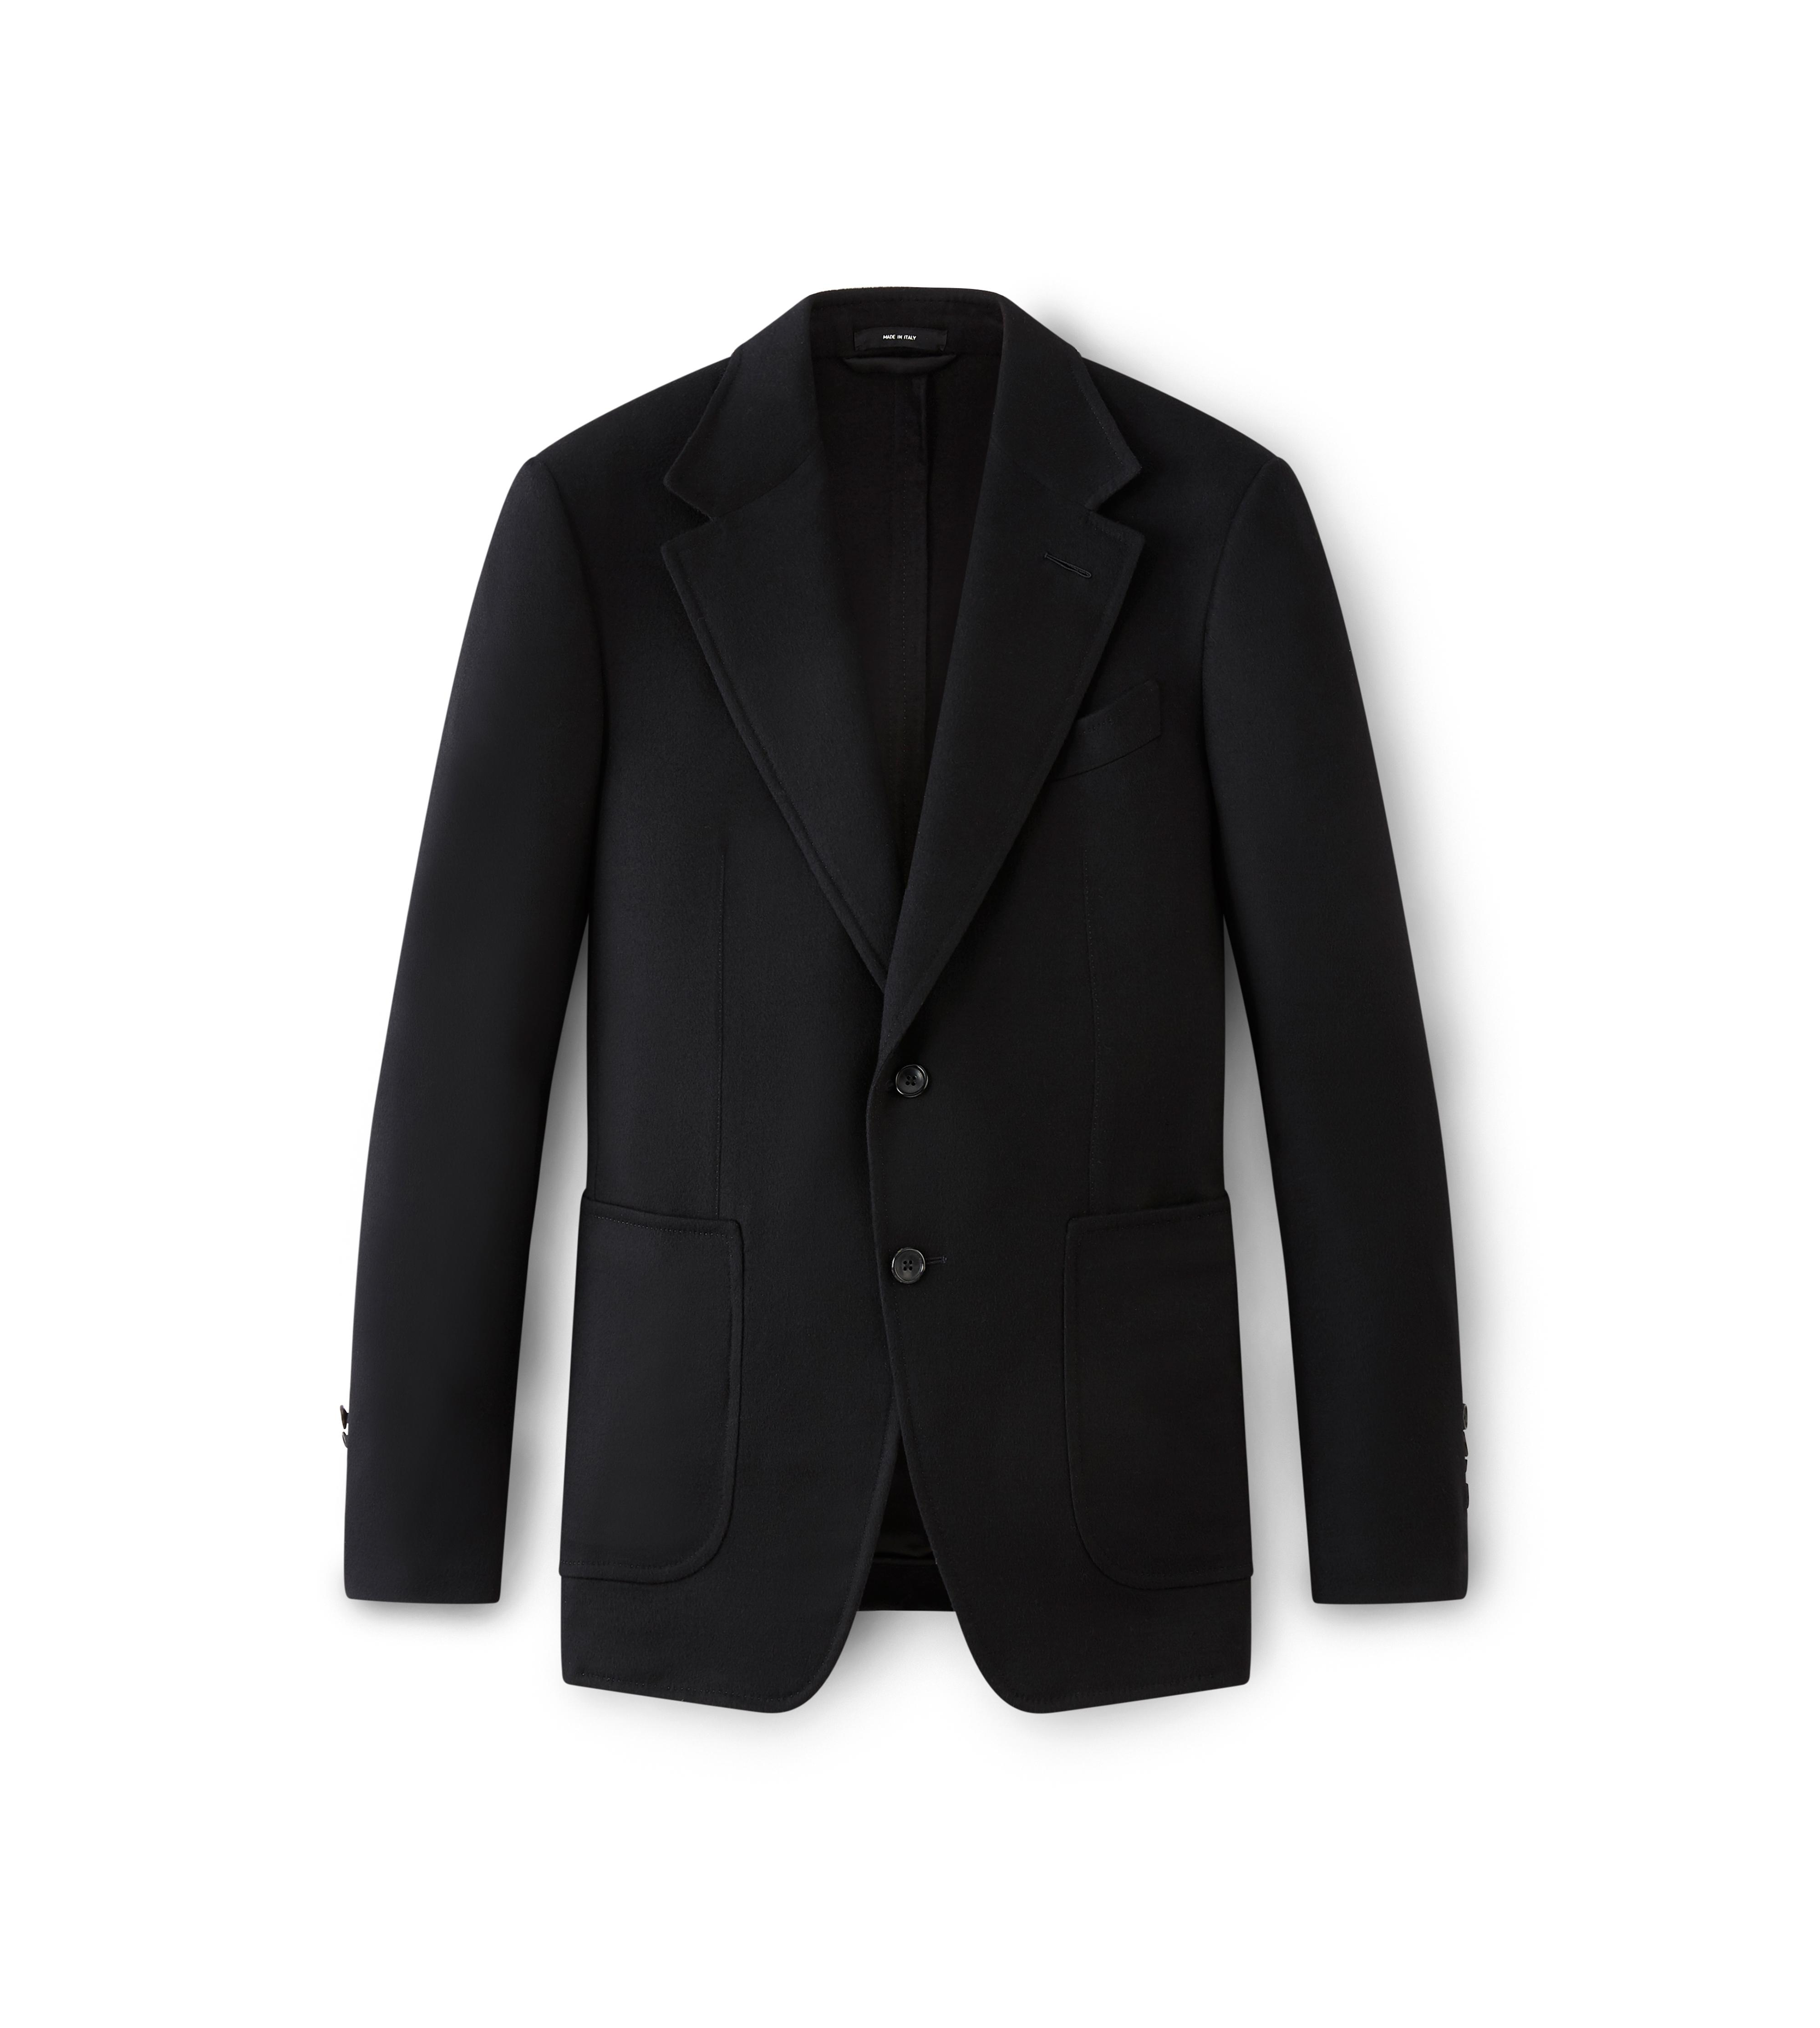 BLACK SHELTON JACKET WITH SUEDE PATCHES A thumbnail